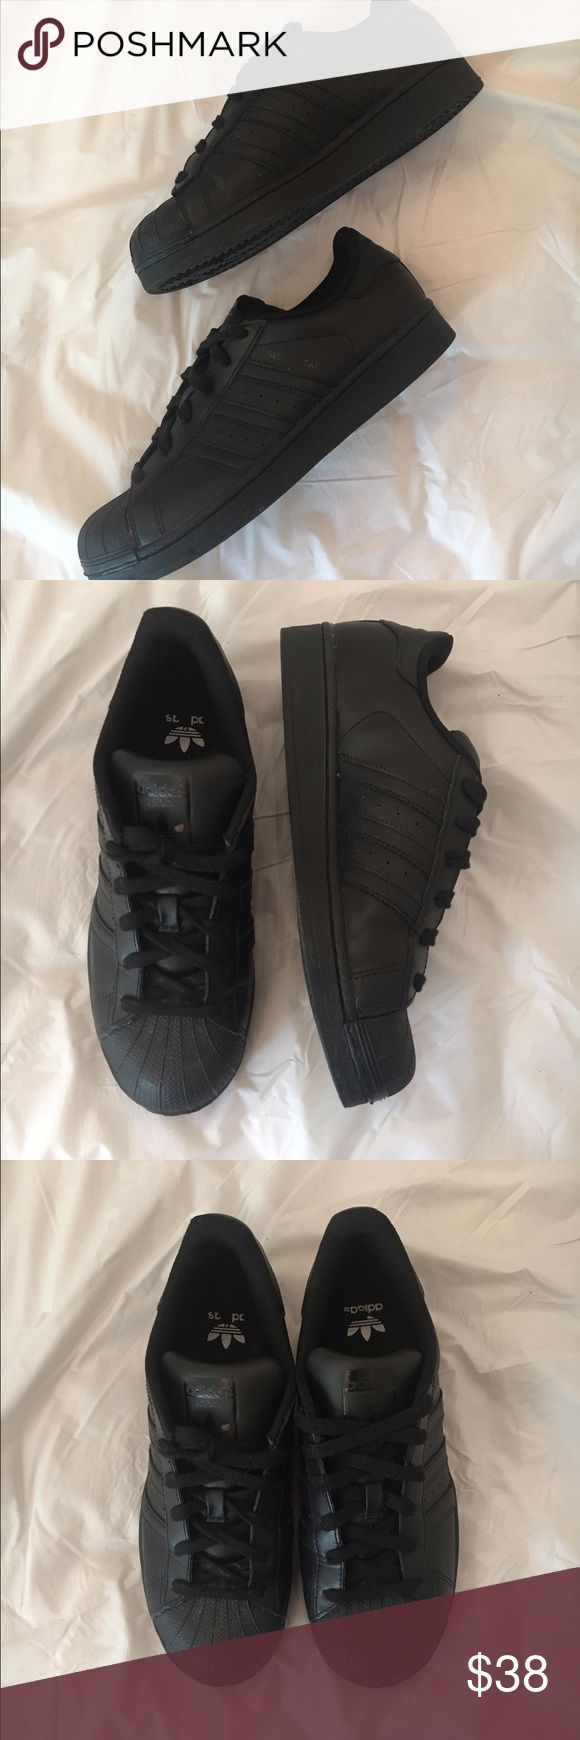 Adidas Superstar Shoes All black Adidas Superstars. Barely worn. Size 8 womens/ 6 mens Adidas Shoes Sneakers